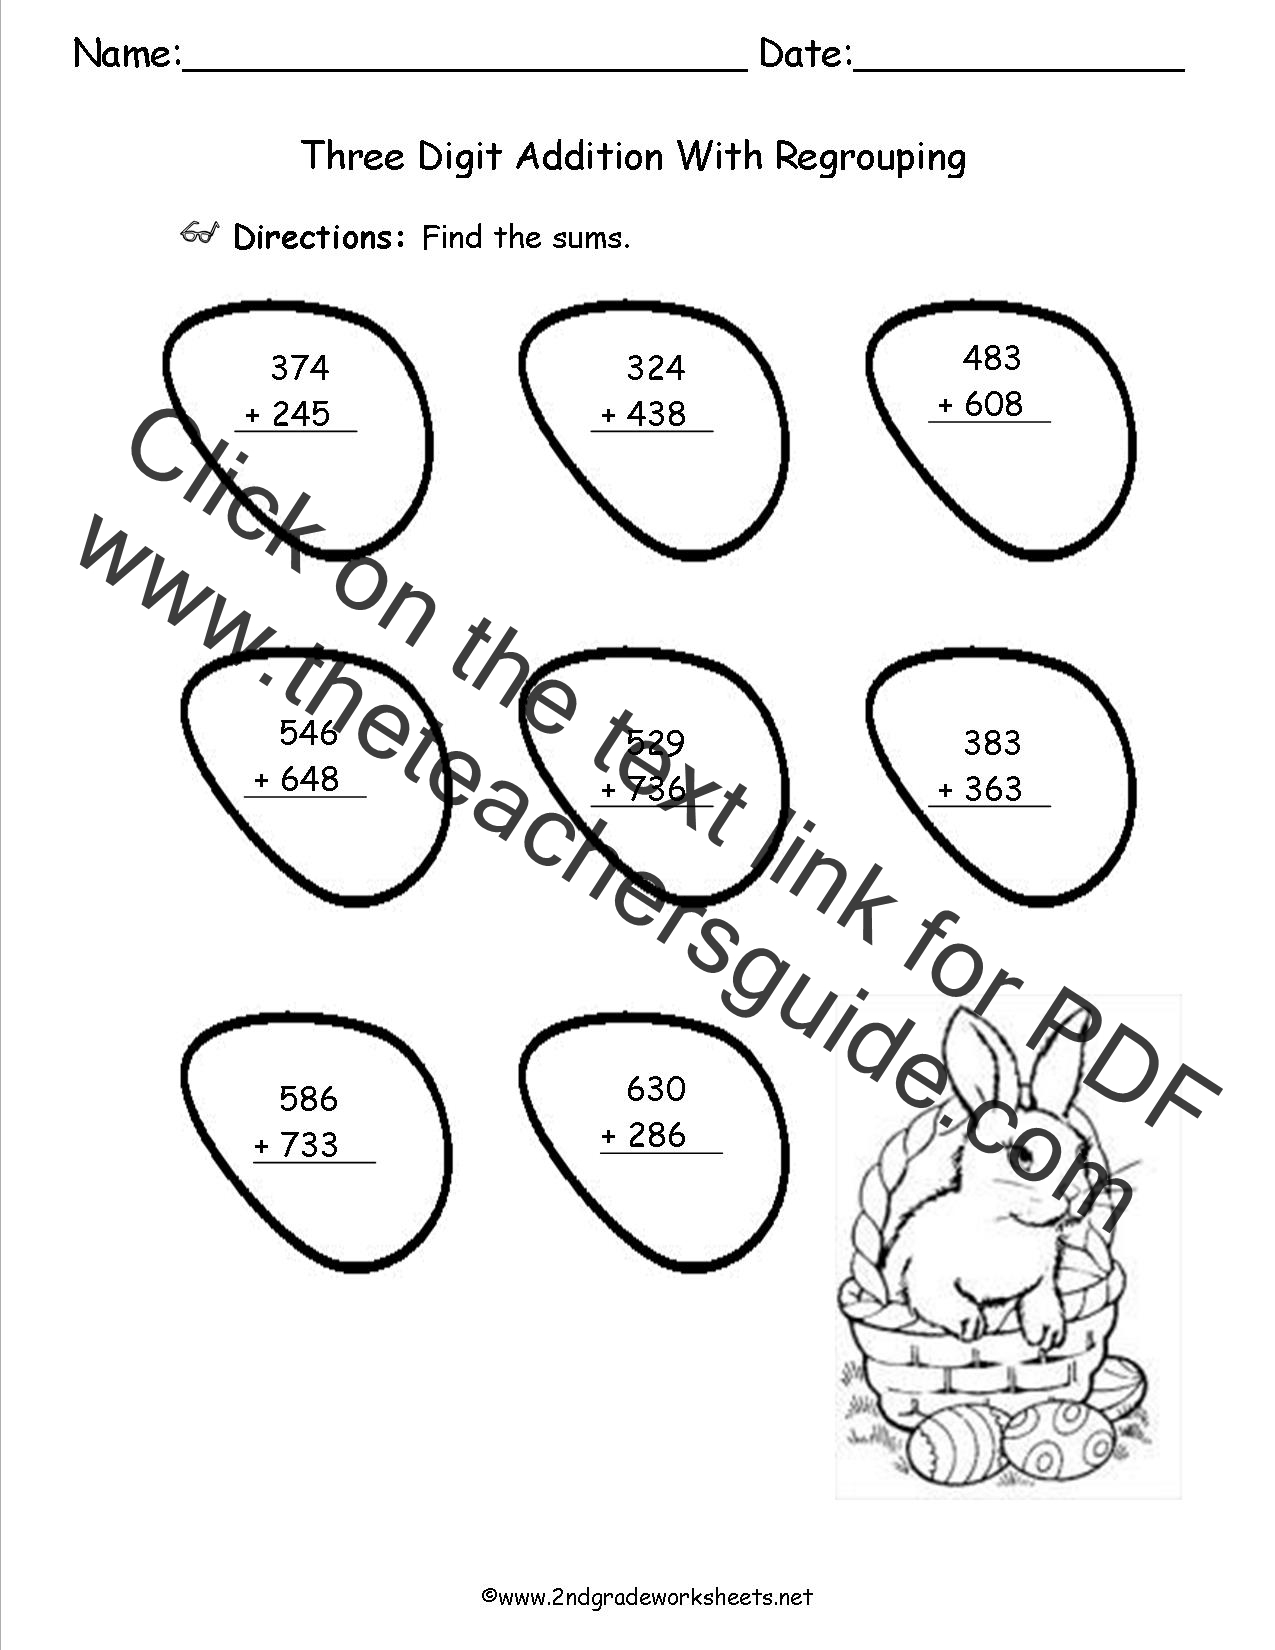 math worksheet : easter worksheets and printouts : Addition With Regrouping Worksheet